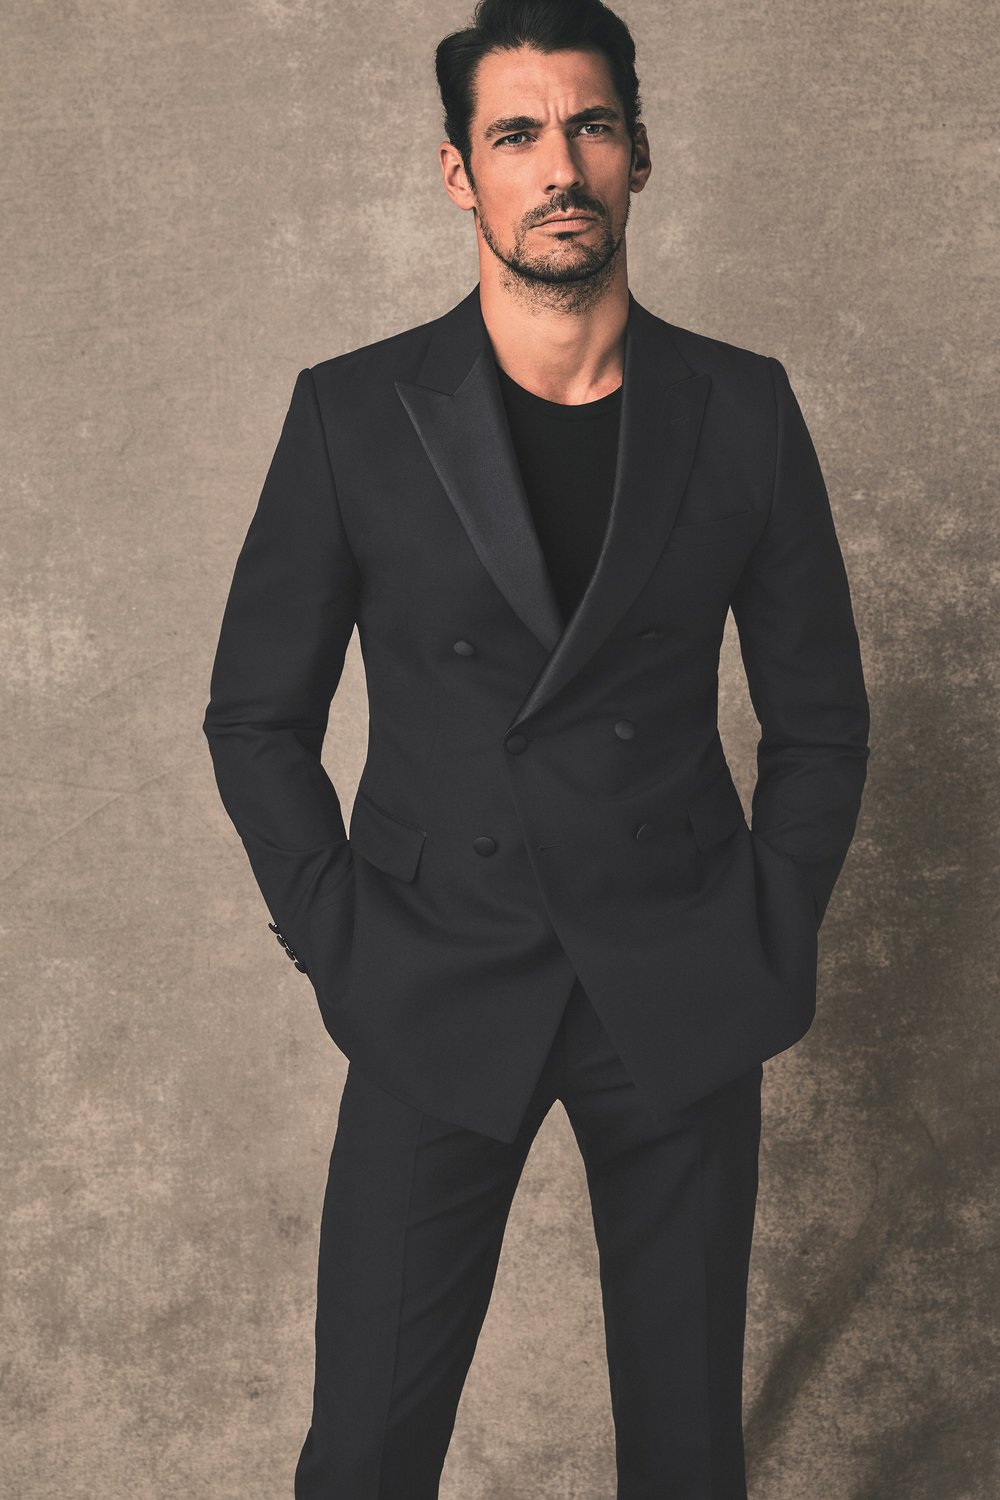 M&S David Gandy Tailoring Collection 2.jpg